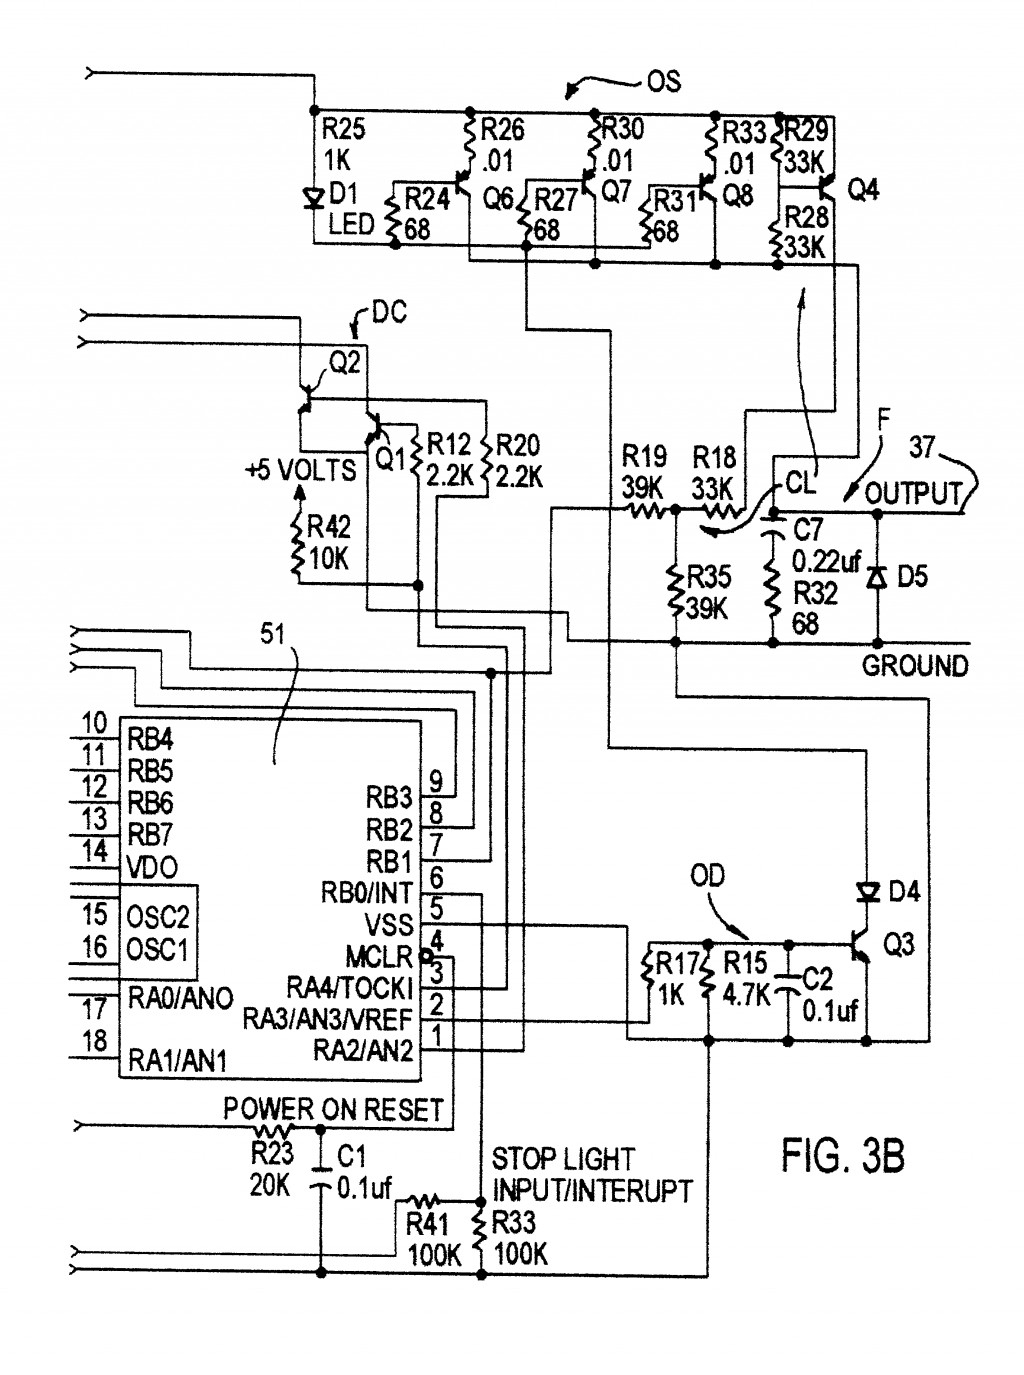 Collection Of Razor E100 Wiring Diagram Sample